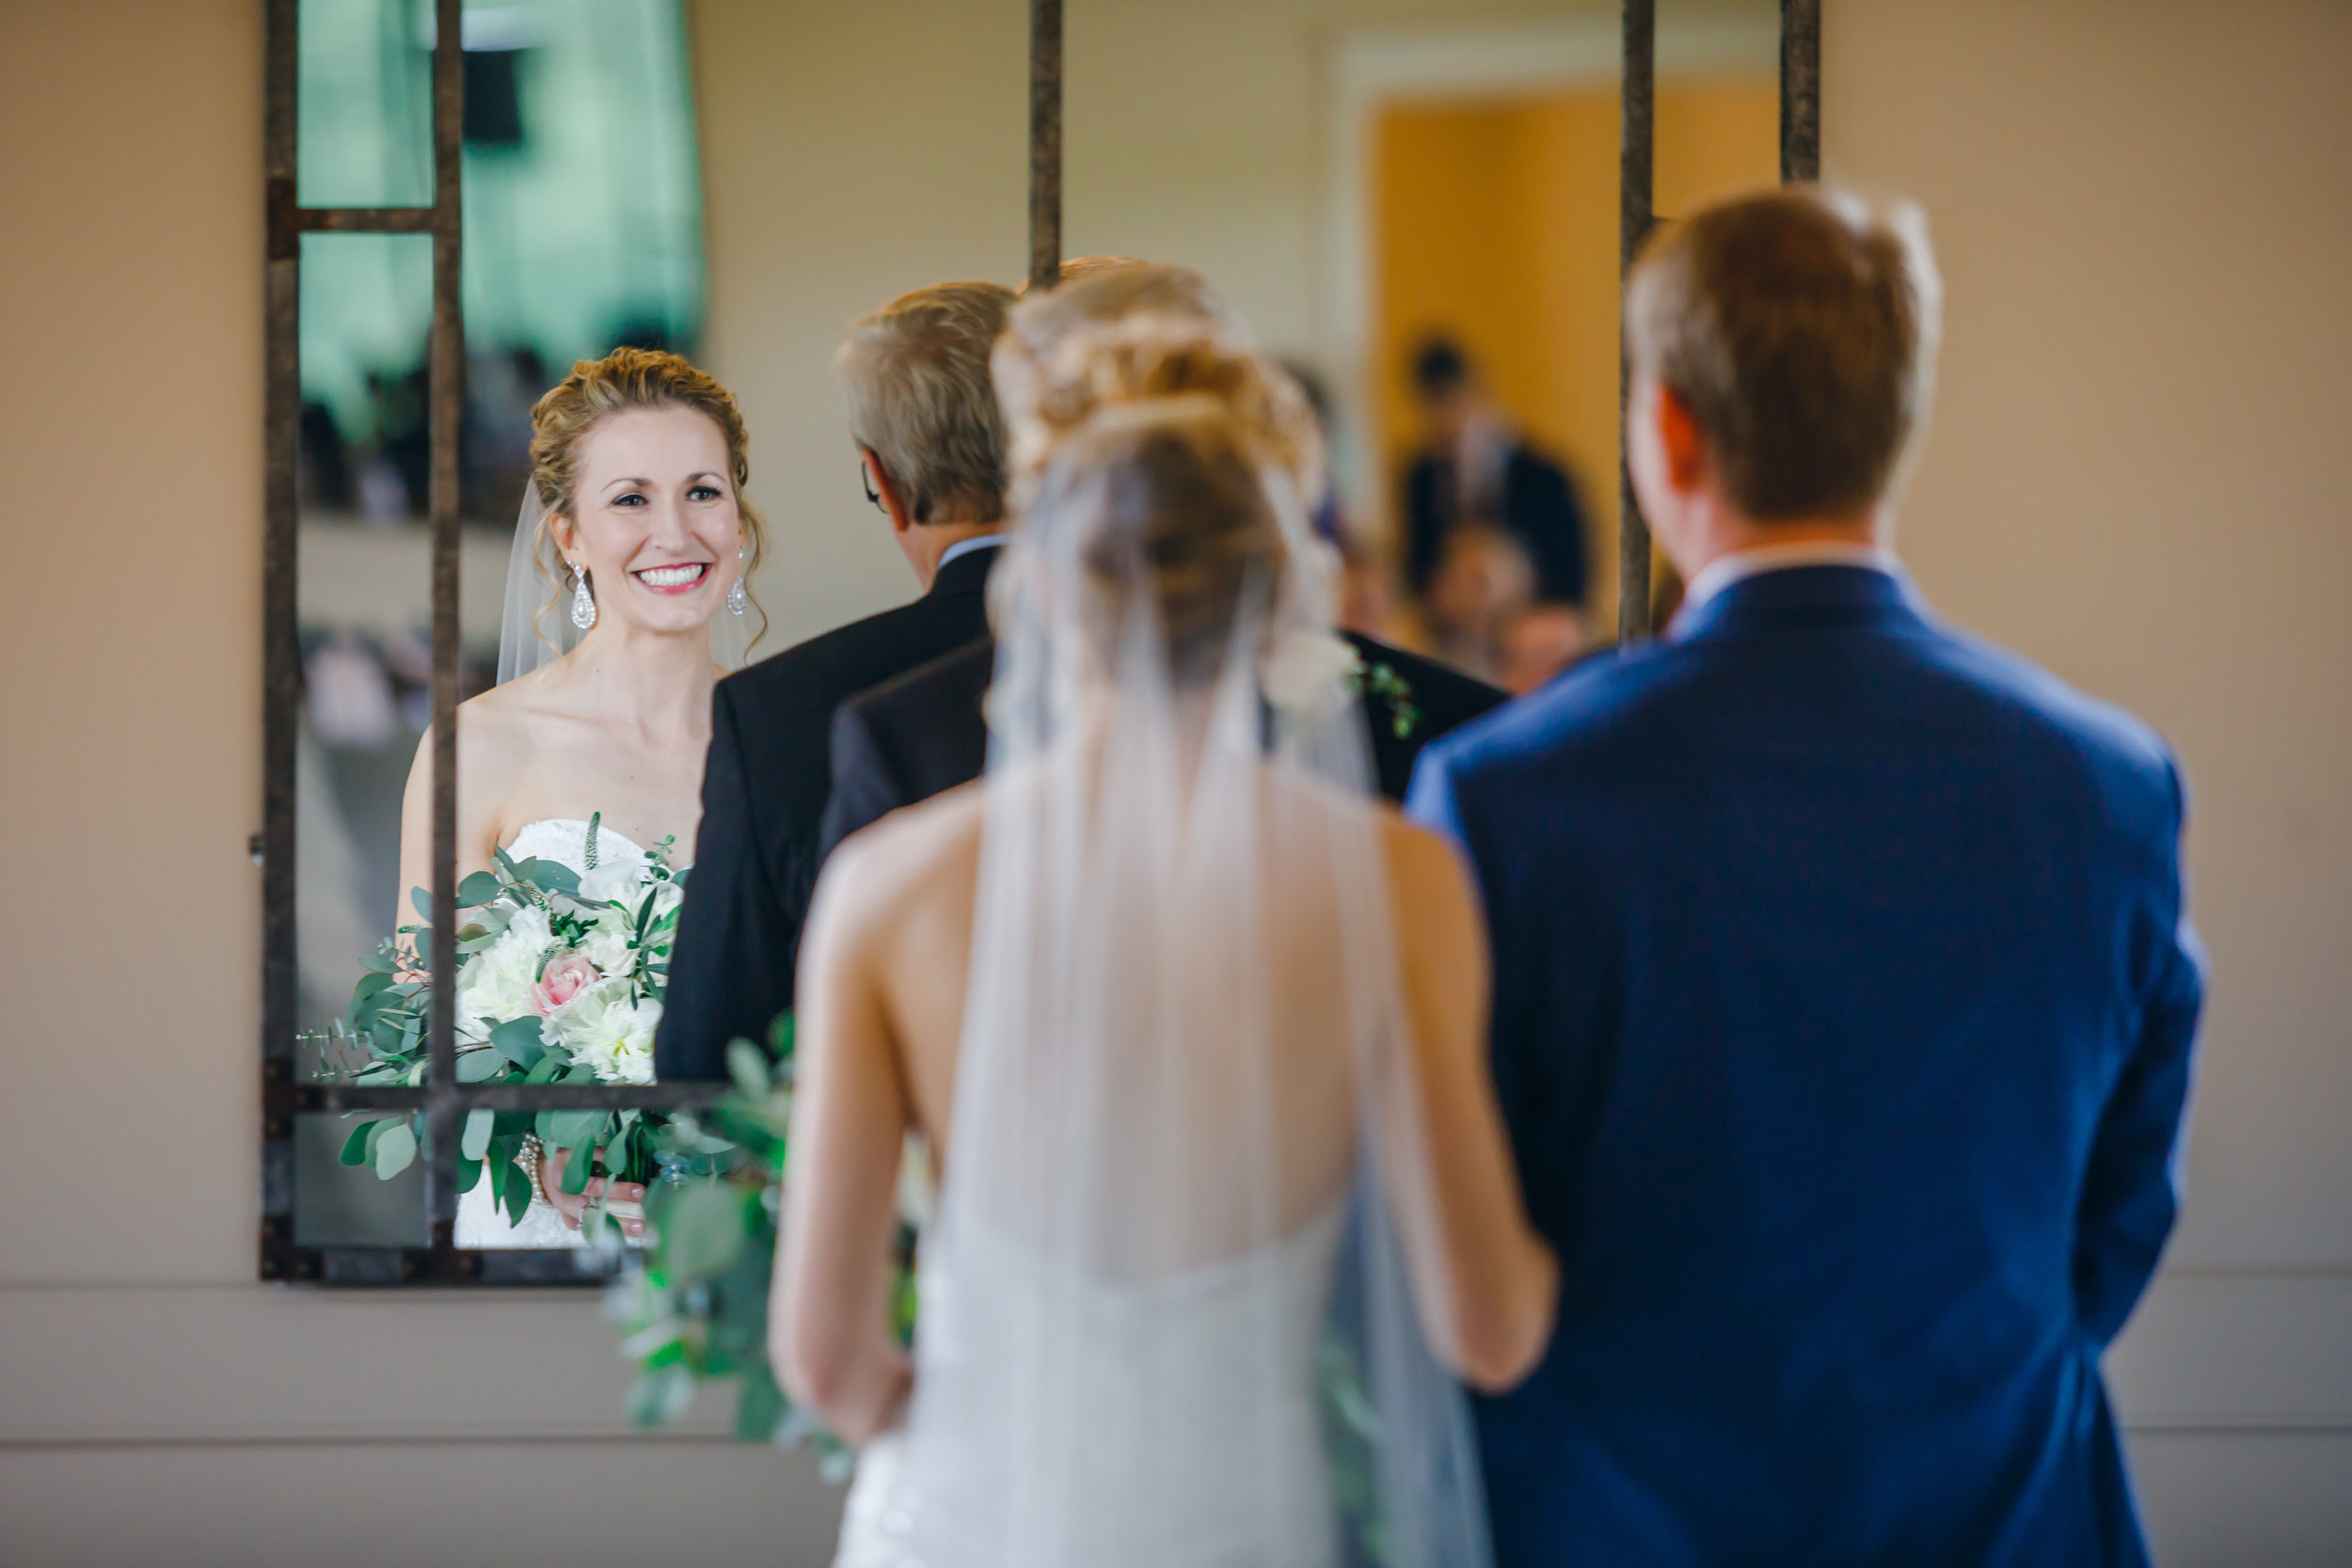 I had a guest tell me that they loved being able to see the bride and groom and their expressions throughout the ceremony in the mirrors and I just LOVED that!